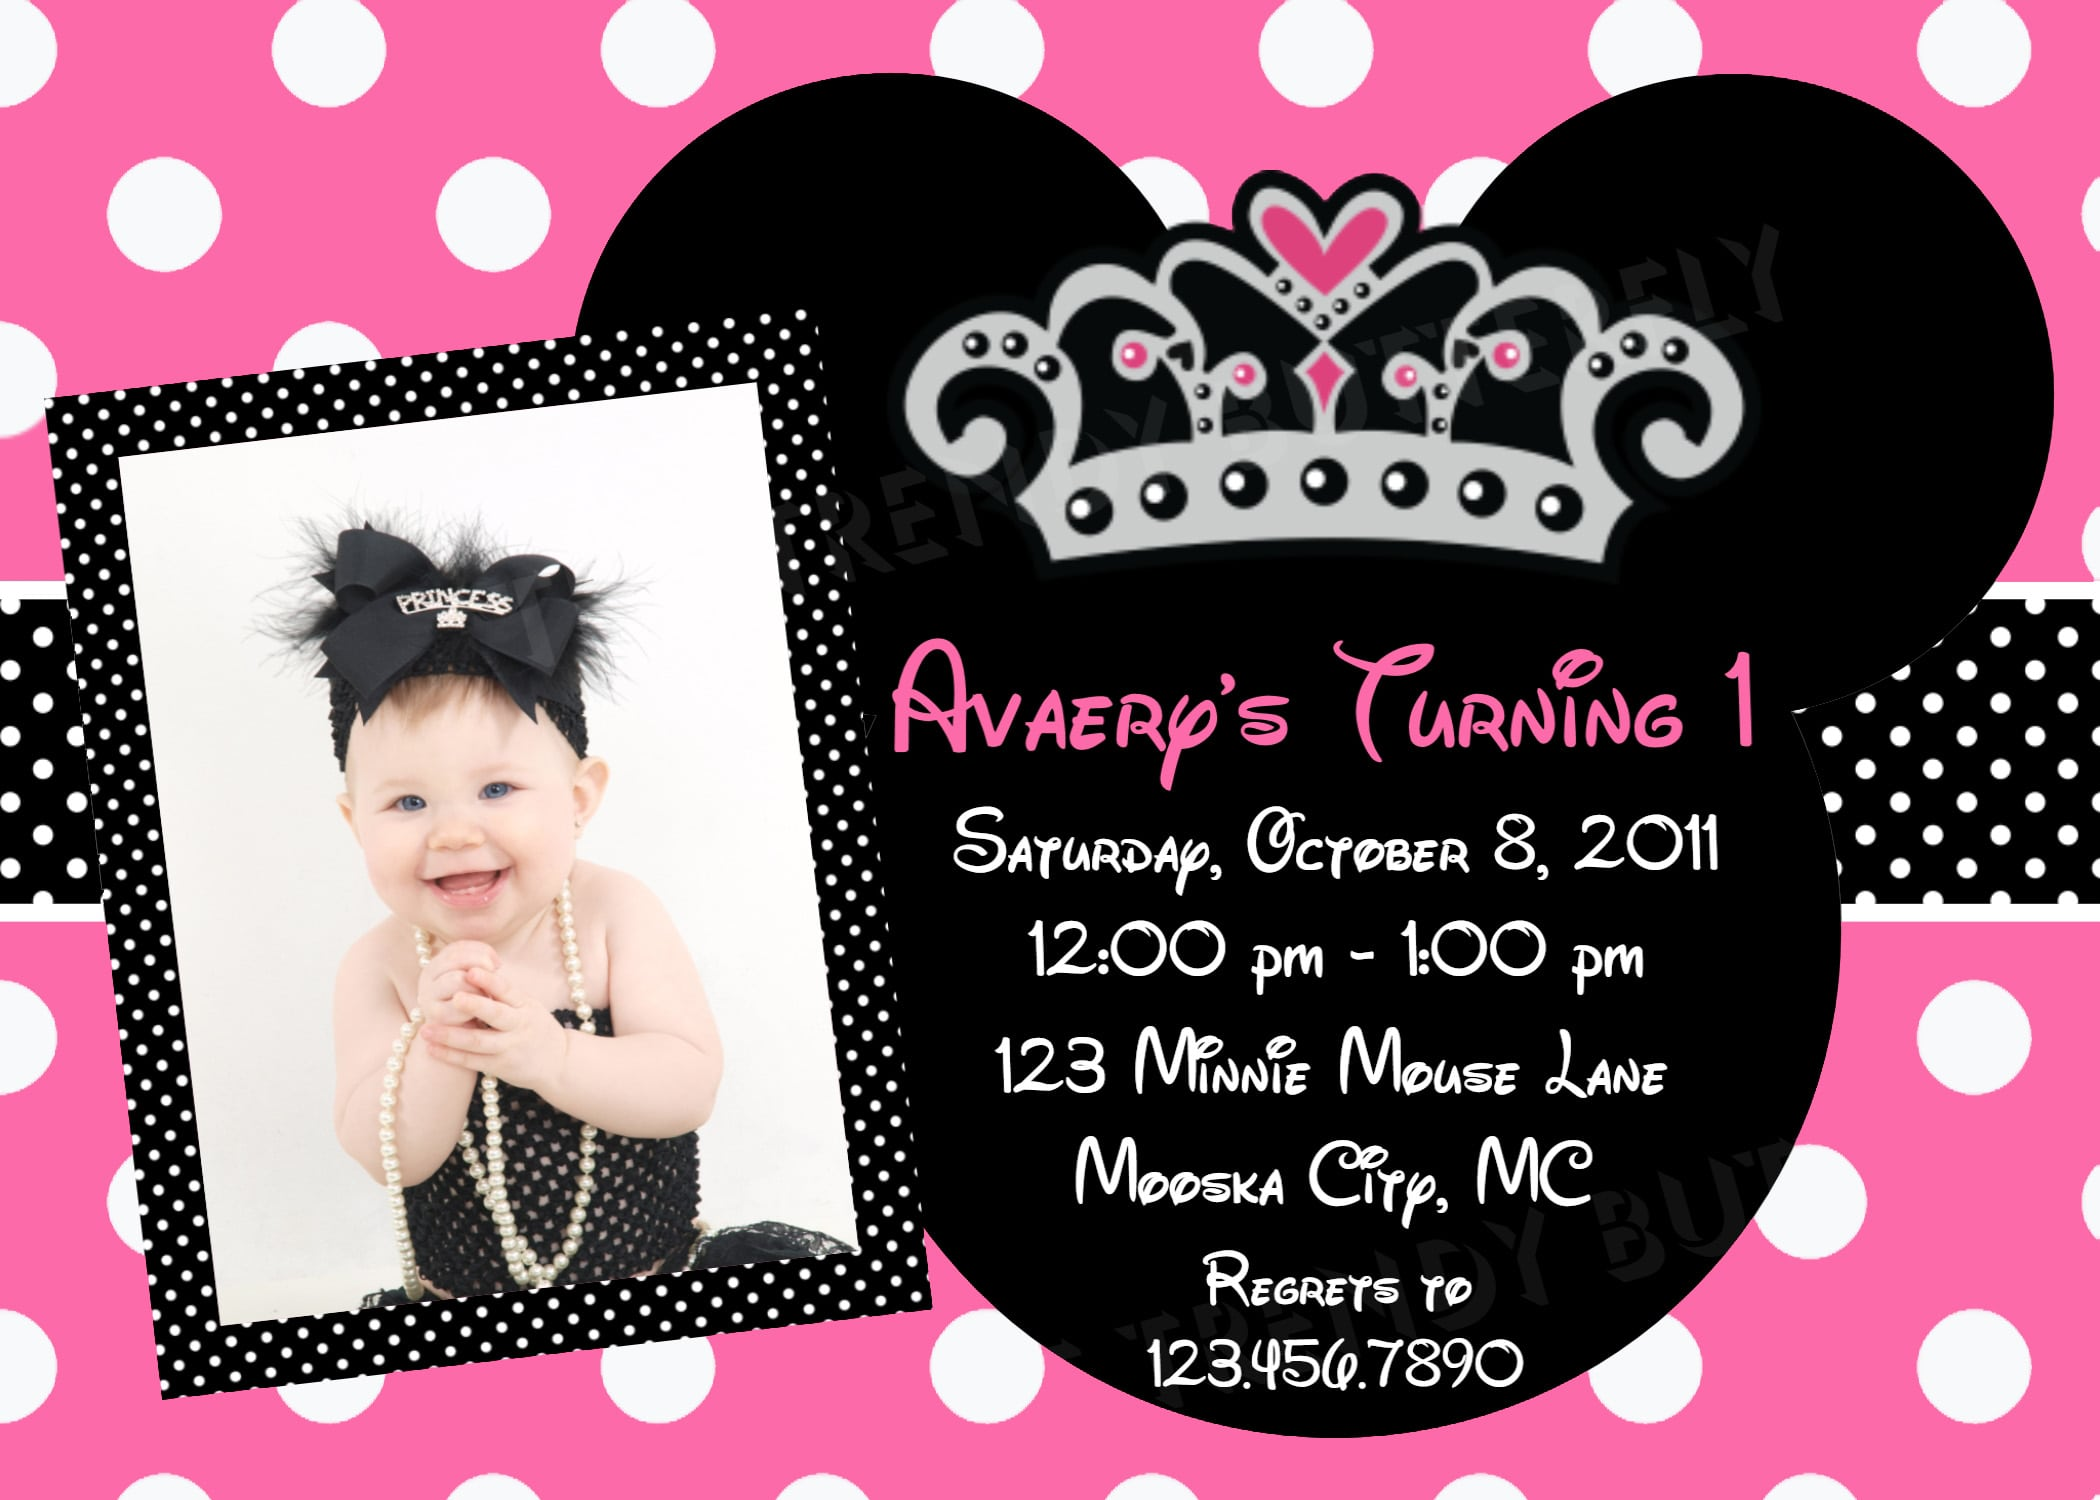 Minnie mouse invitation template download ukrandiffusion invitation template minnie mouse maxwellsz